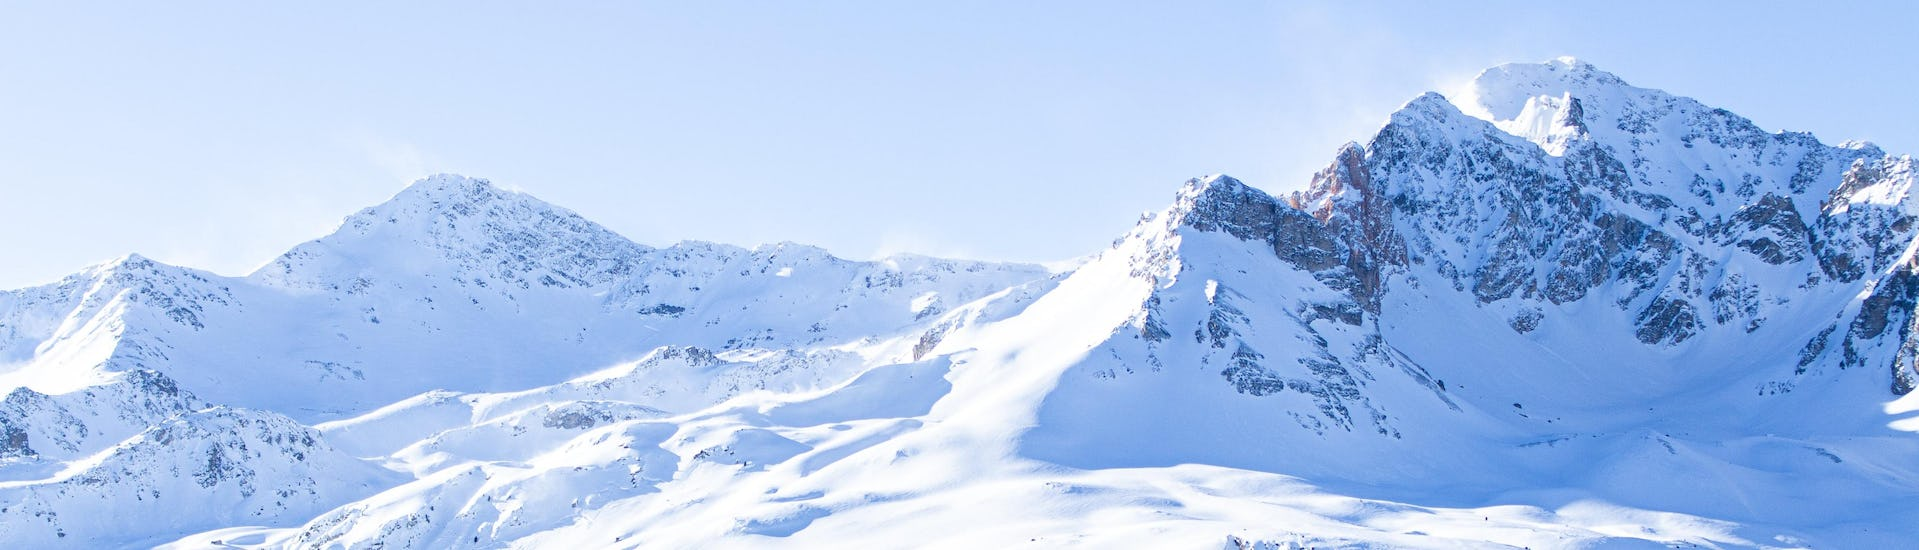 A scenic view of the snow-capped mountains surrouding the French ski resort of Valfréjus where local ski schools offer a large choice of ski lessons.